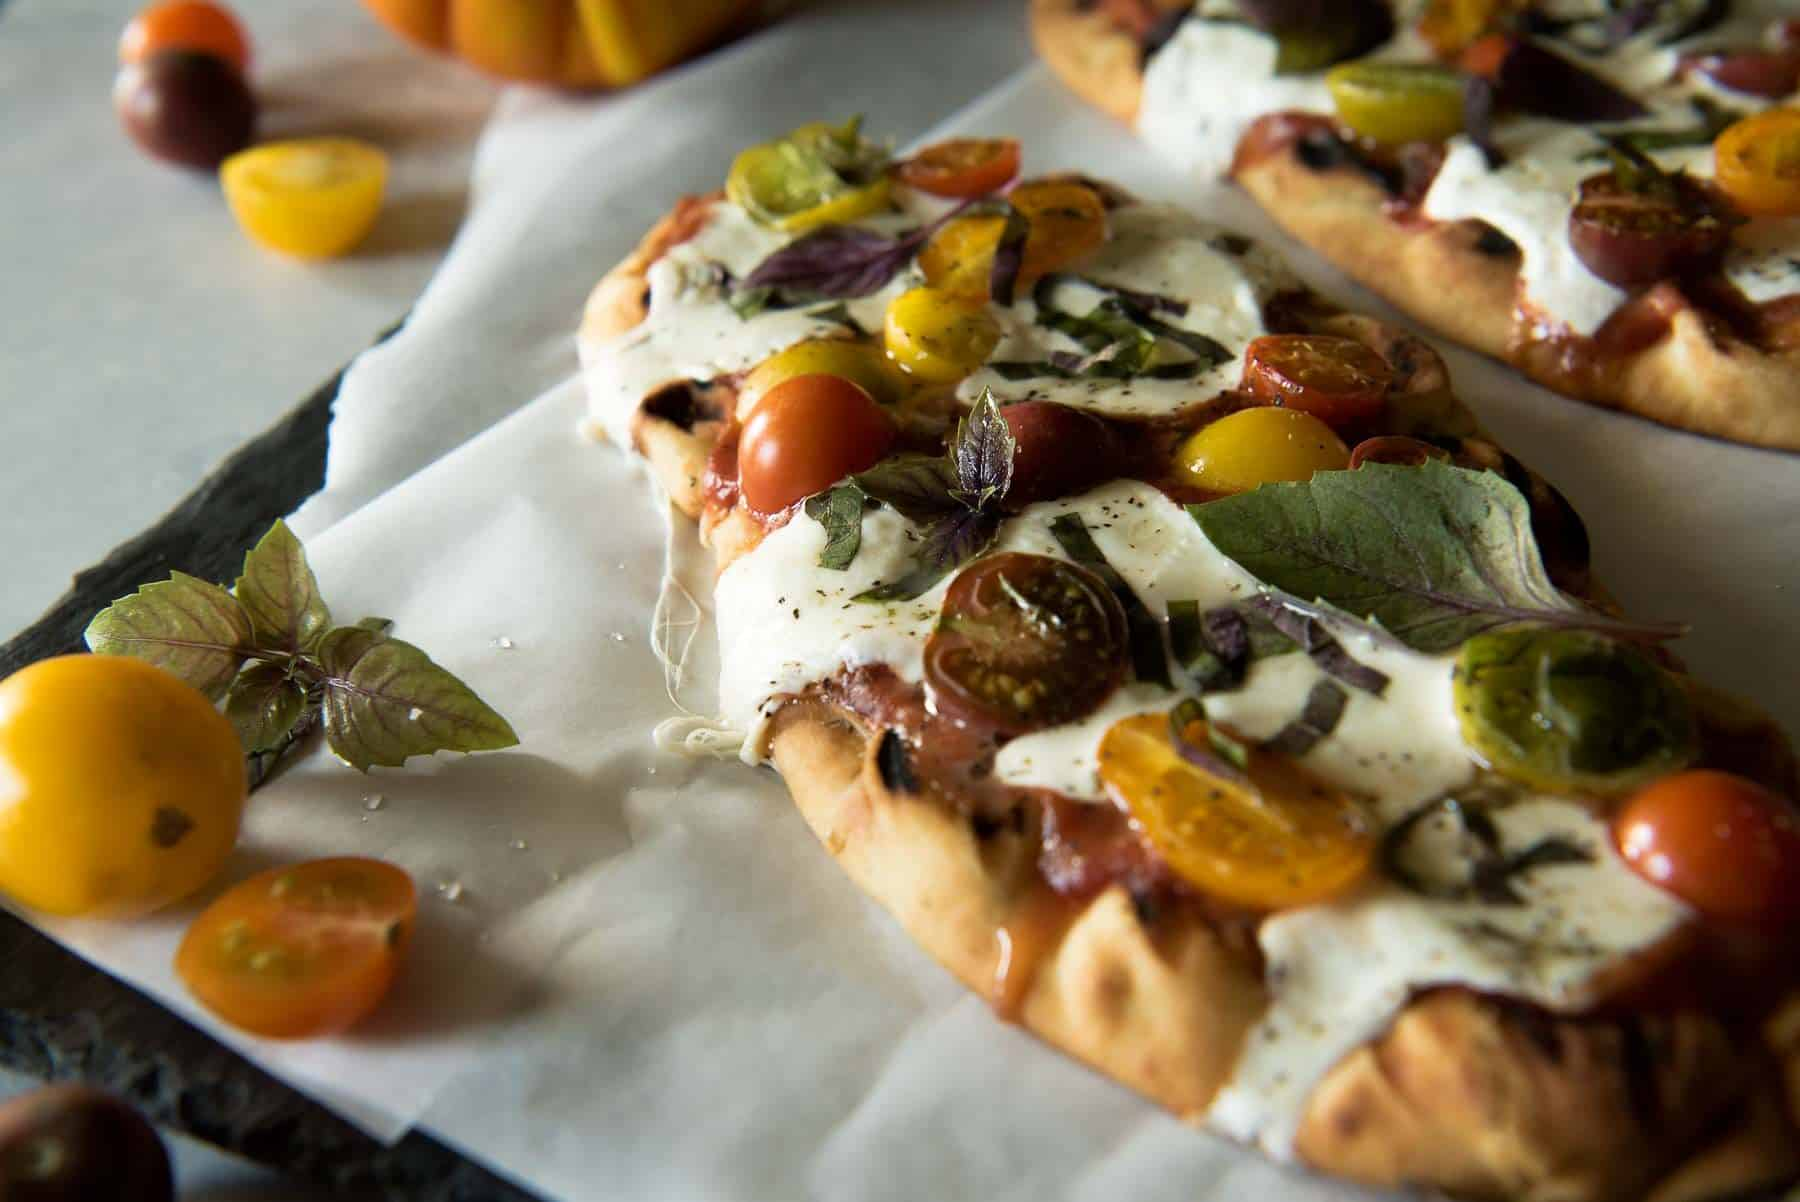 In need of a quick weeknight dinner? This Grilled Margherita Flatbread is all the delicious pizza taste you want with much less work.